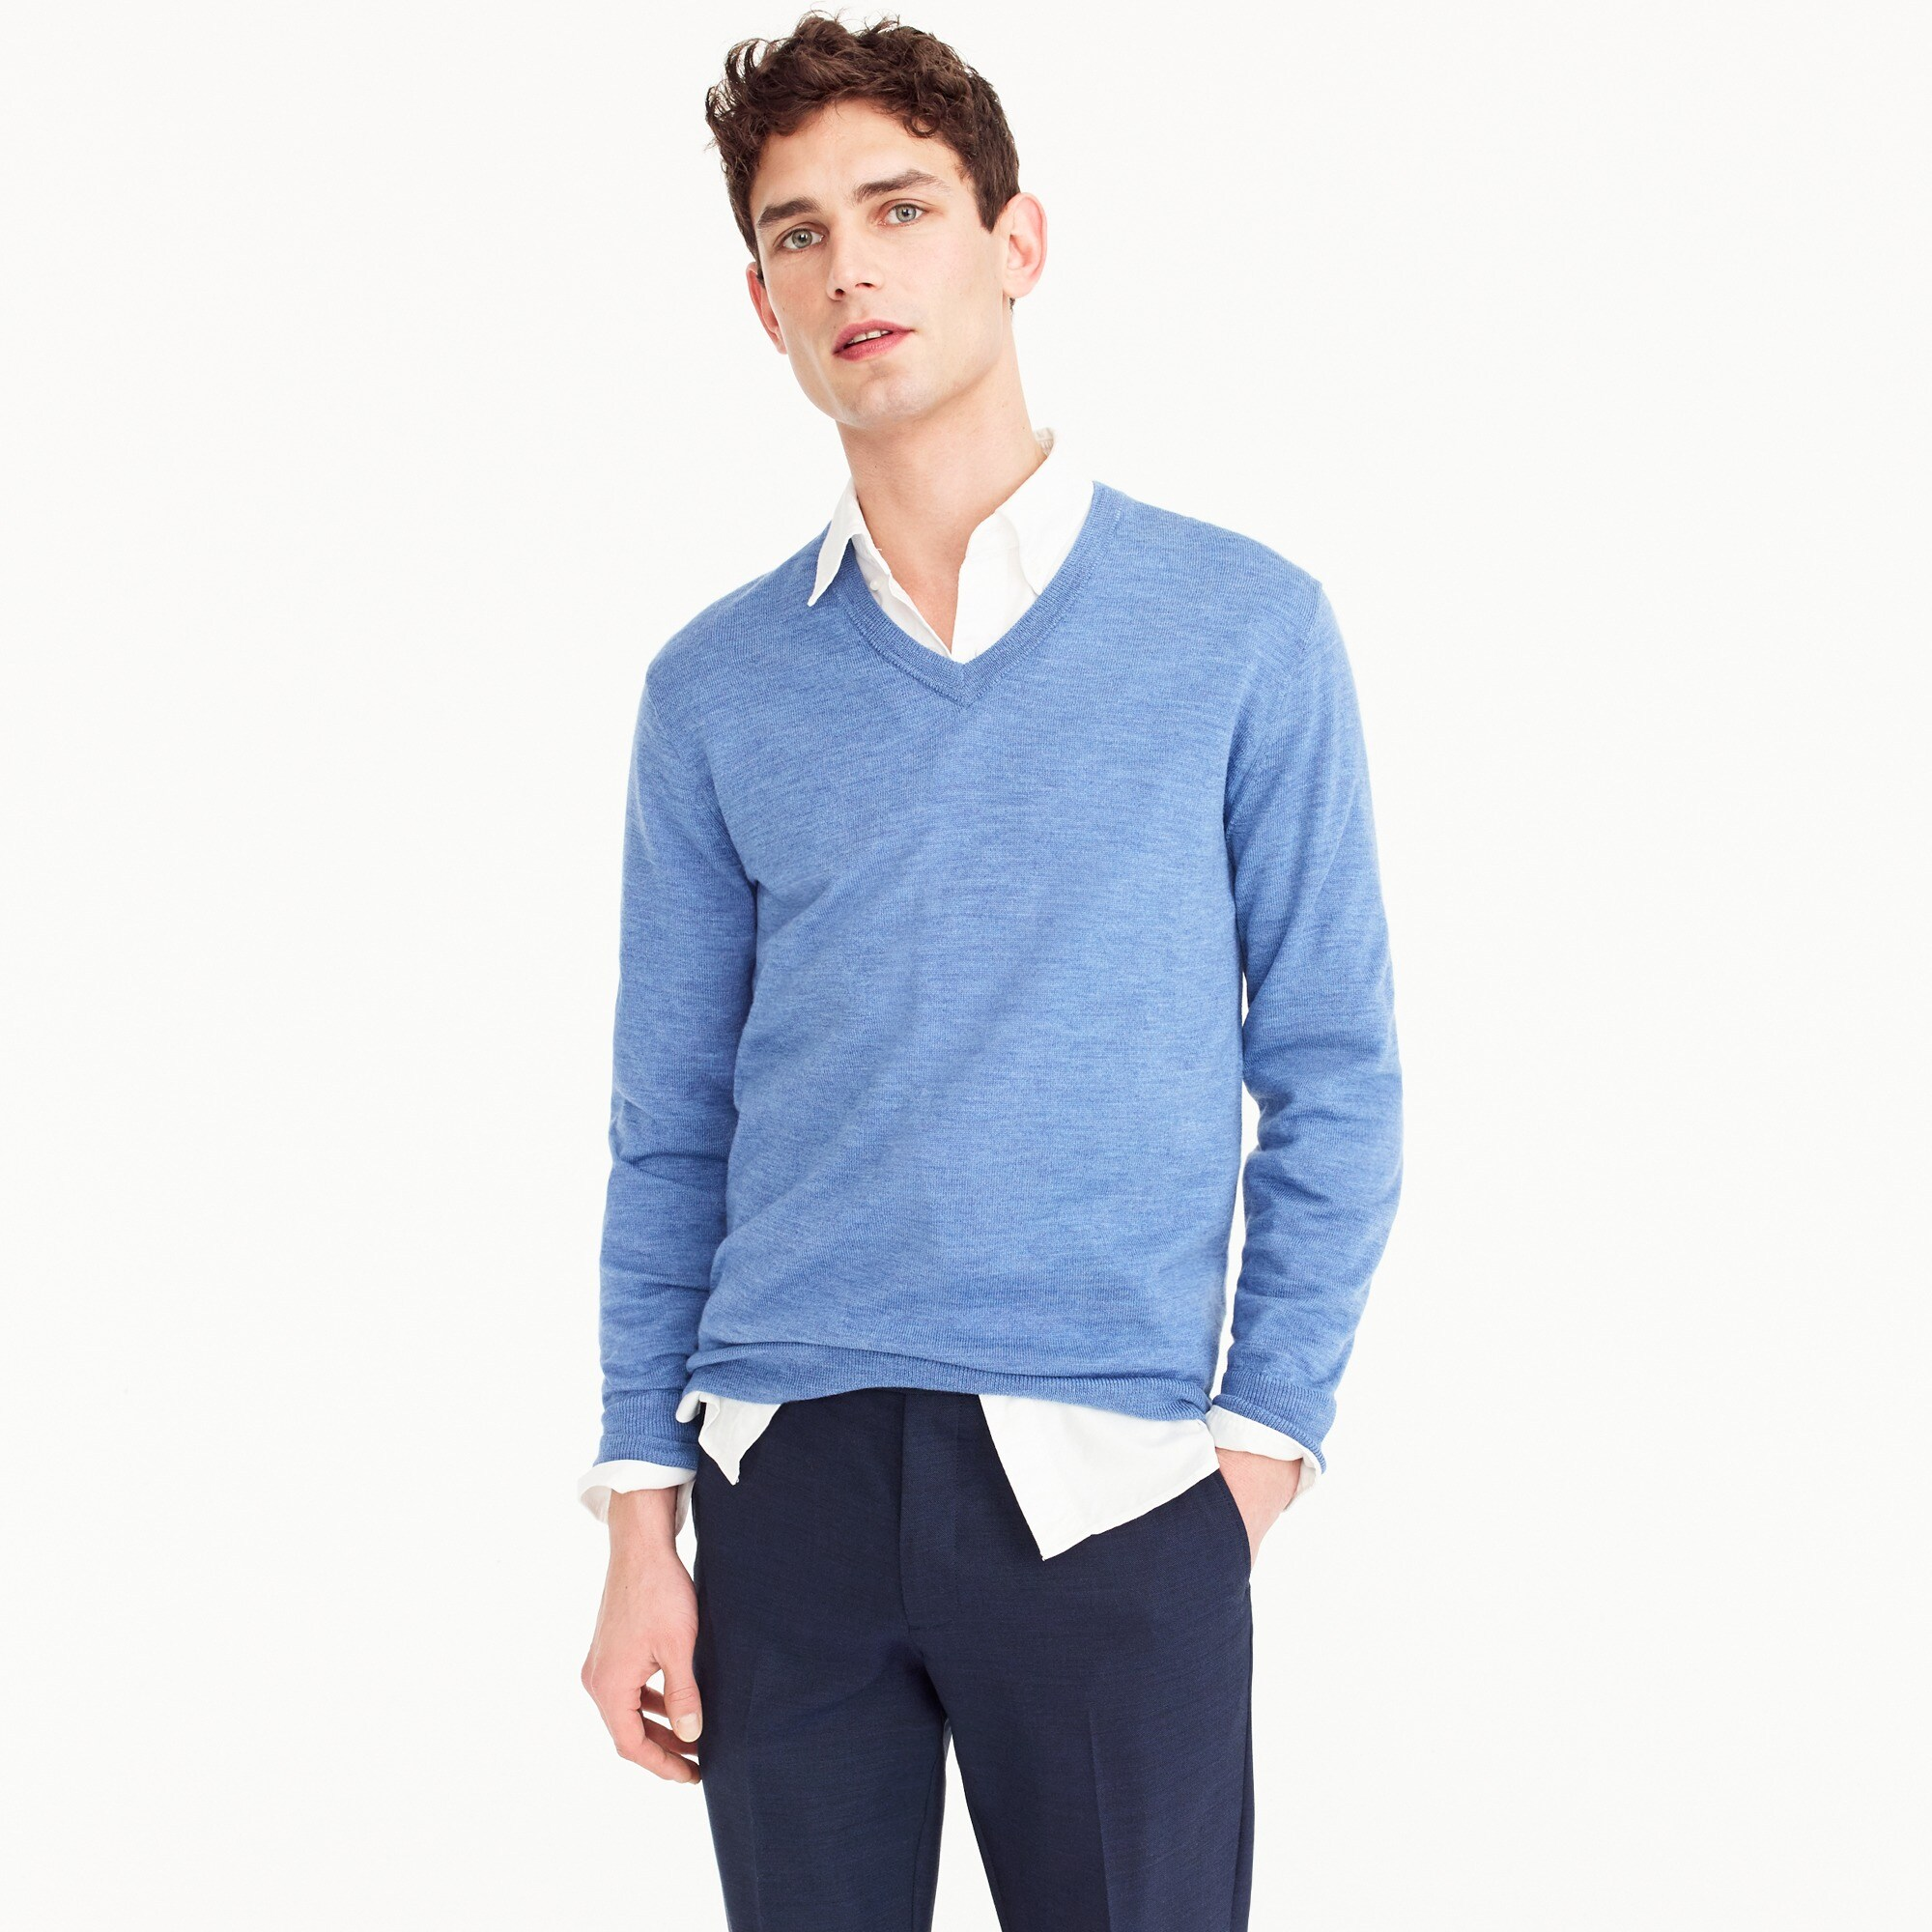 Image 1 for Slim Italian merino wool V-neck sweater